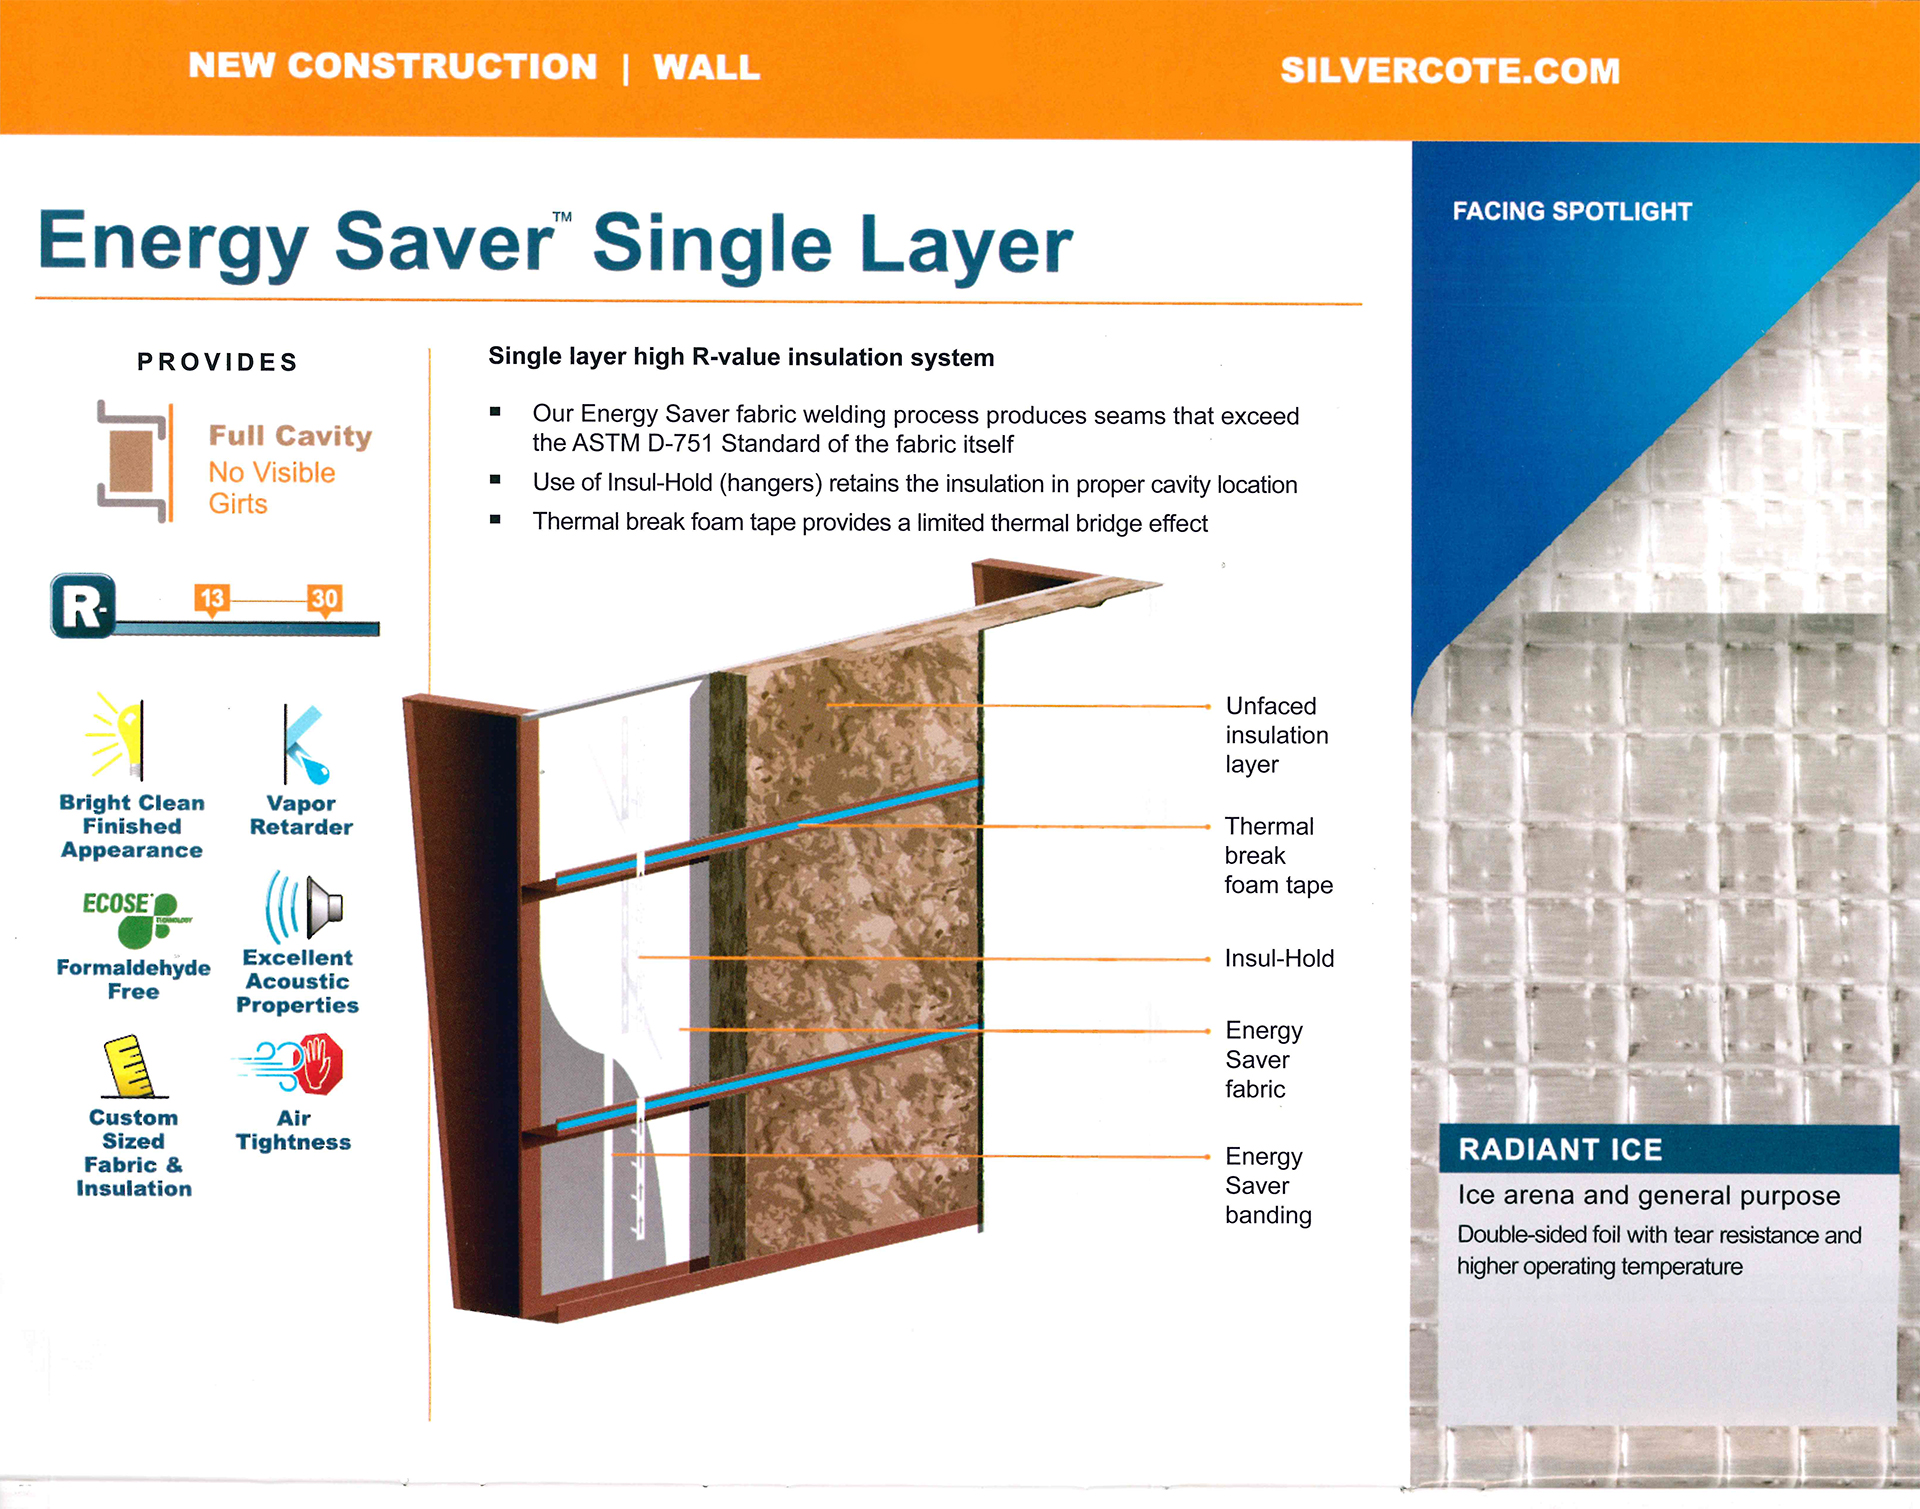 Energy Saver Single Layer